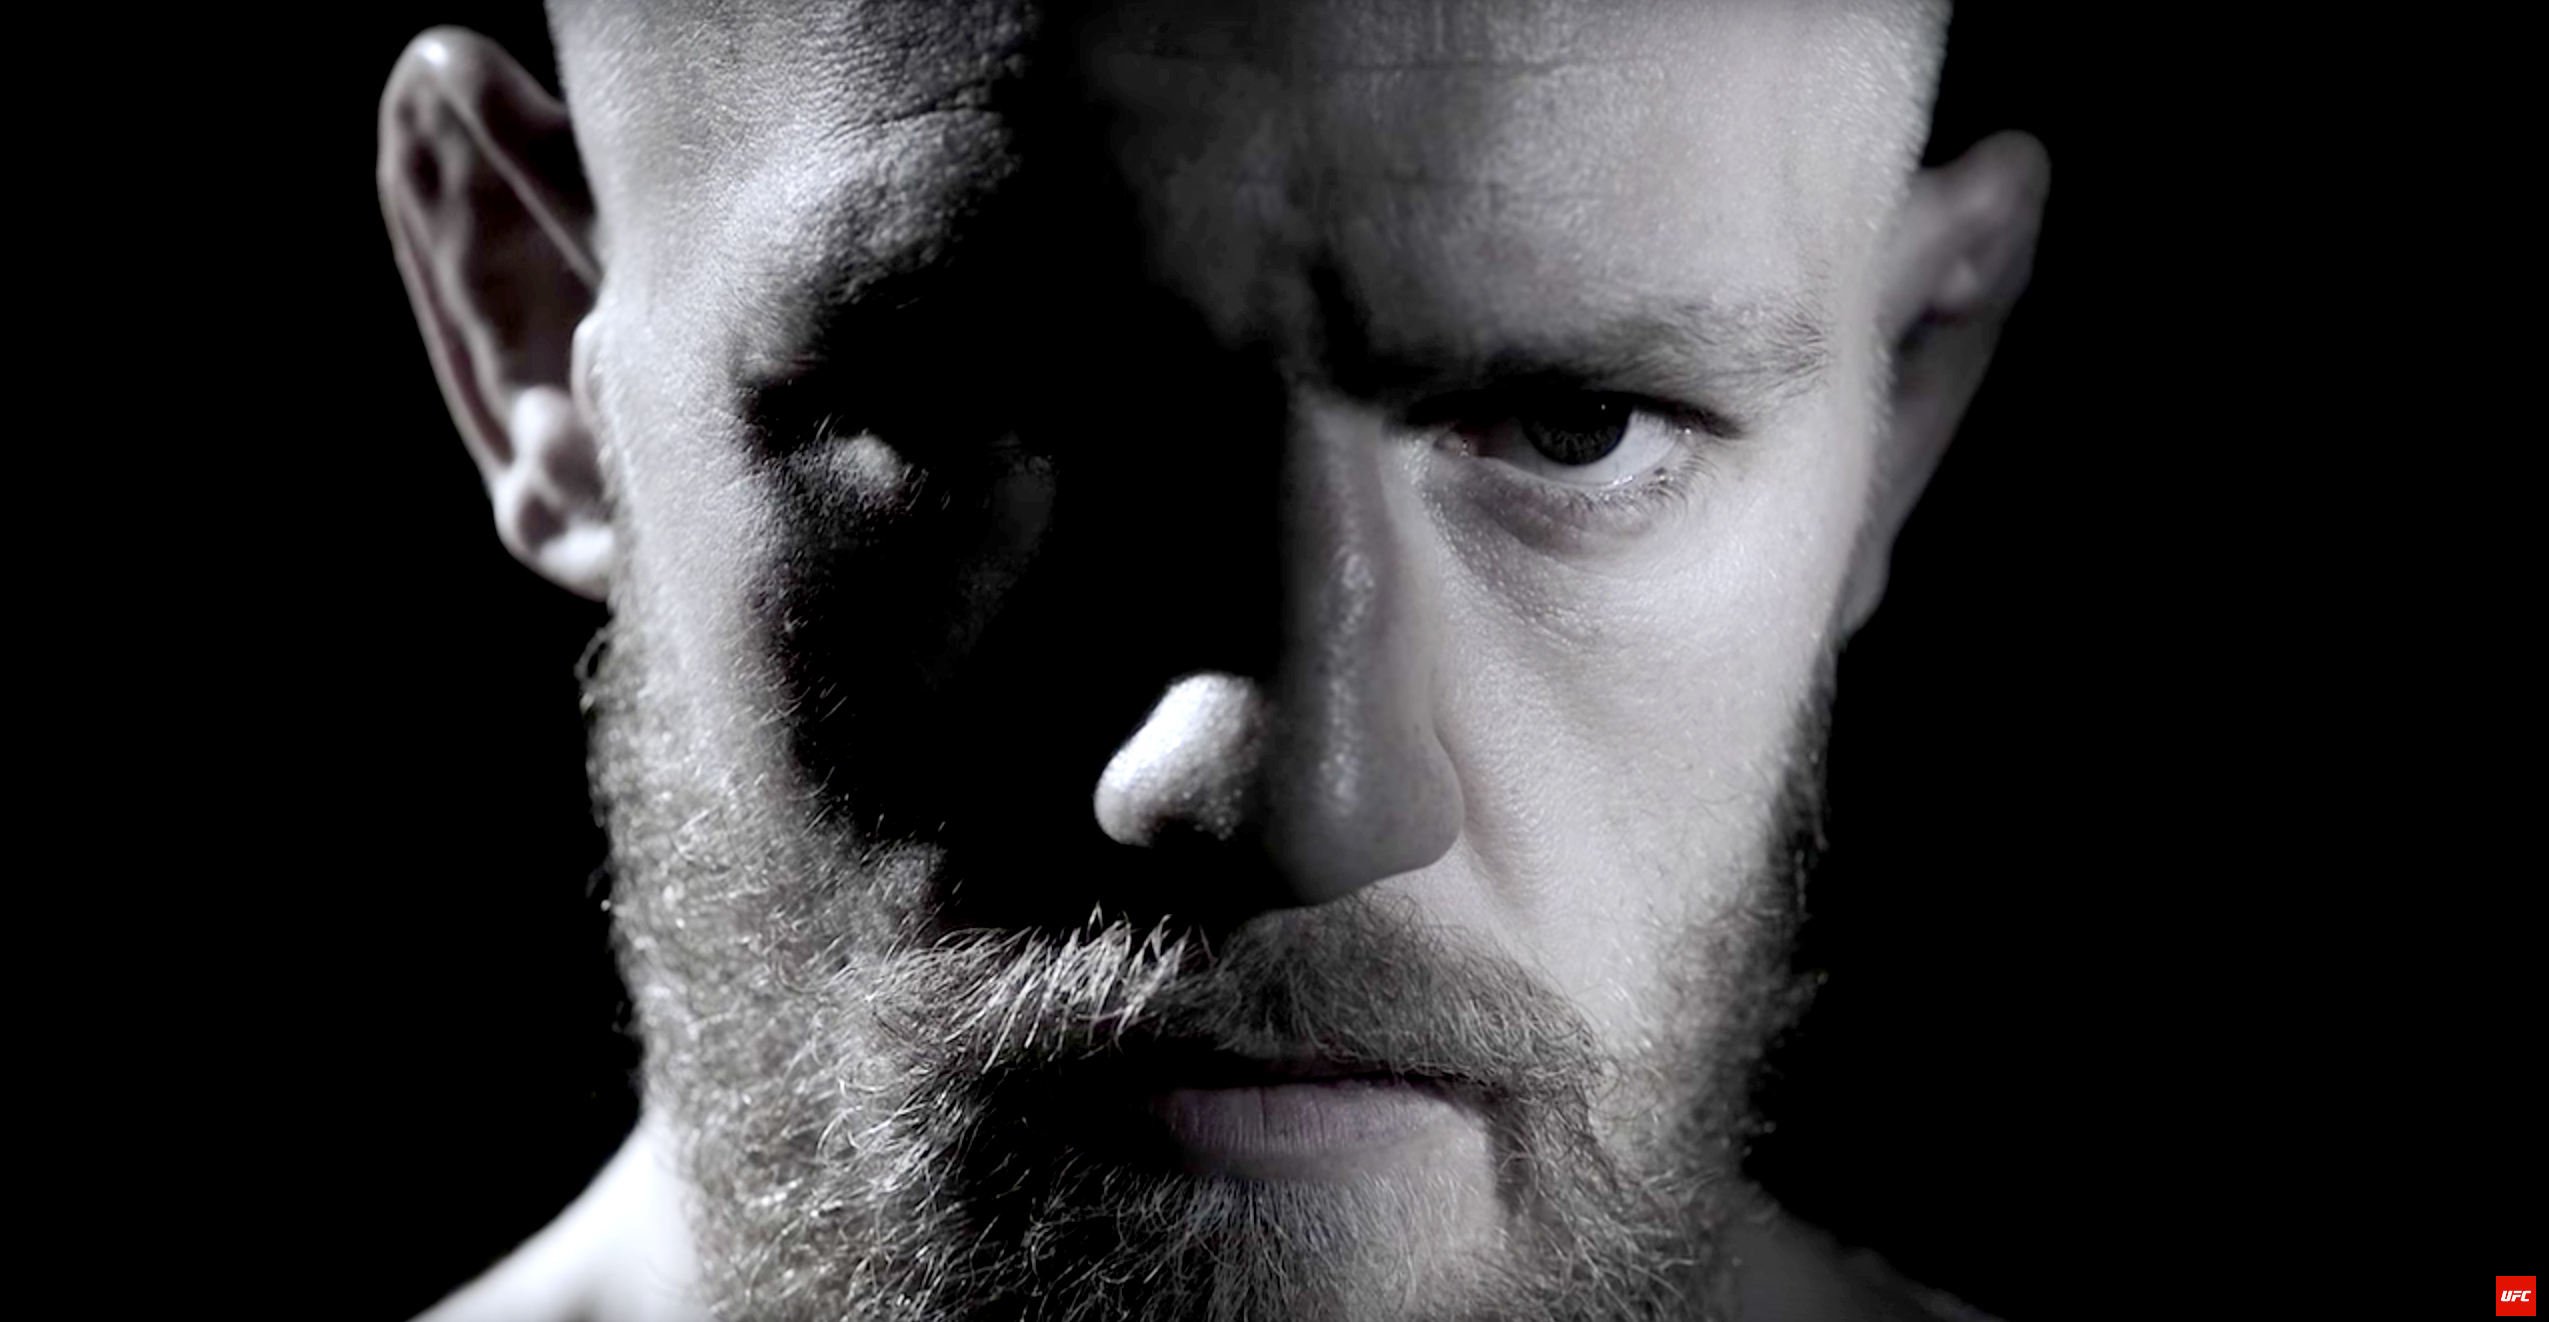 Watch the Epic Promo for Conor McGregor and Nate Diaz's UFC 202 Rematch